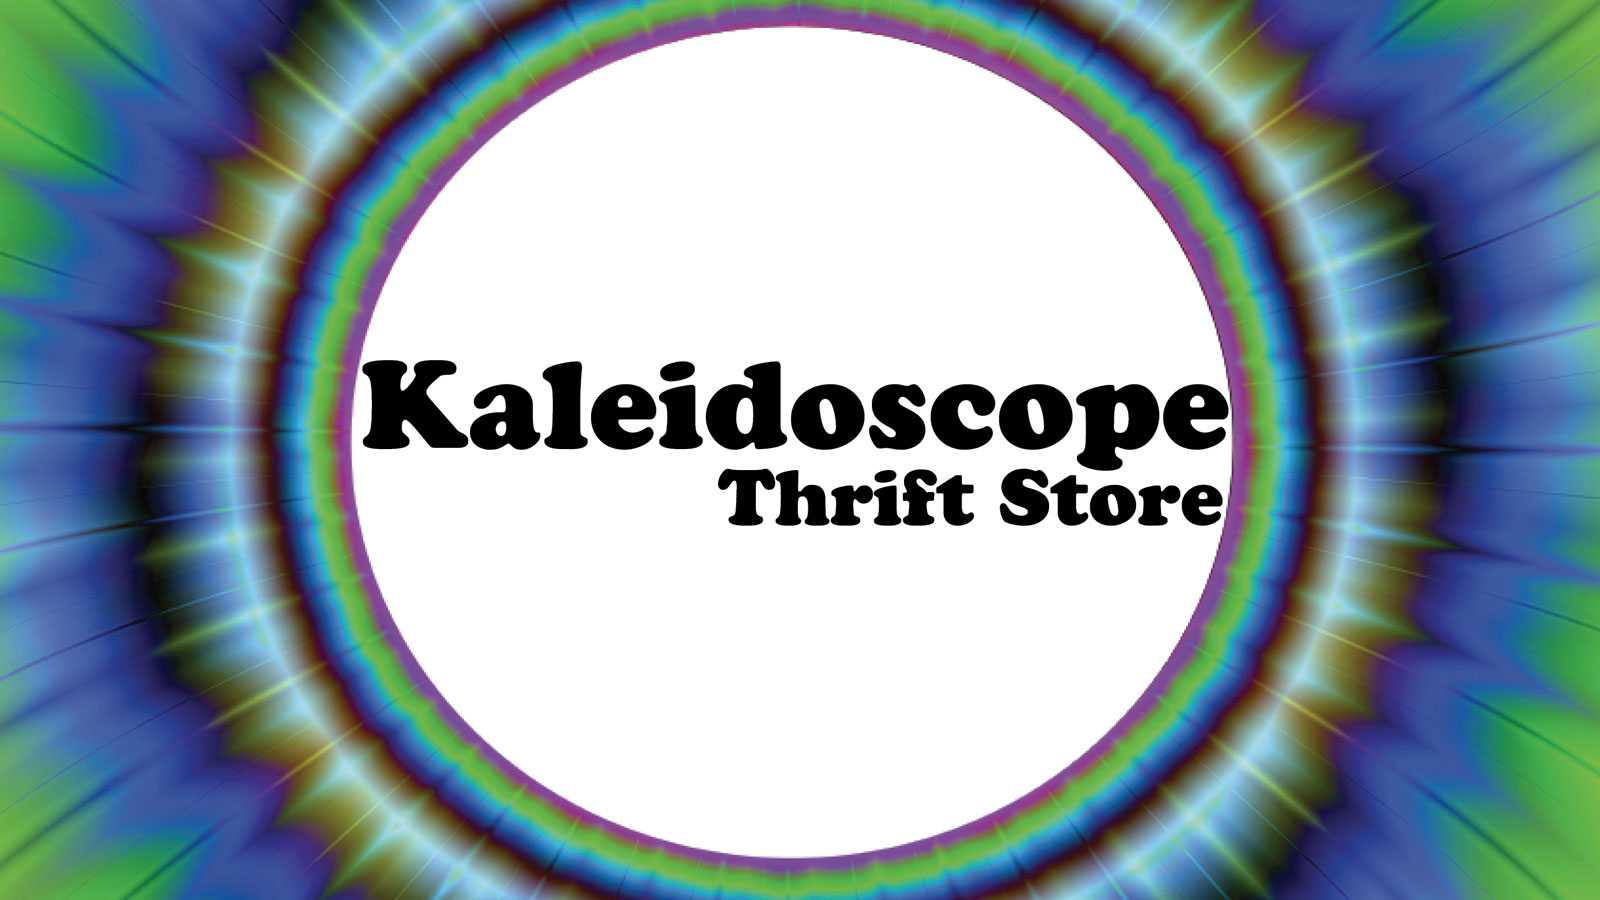 Kaleidoscope thrift store logo